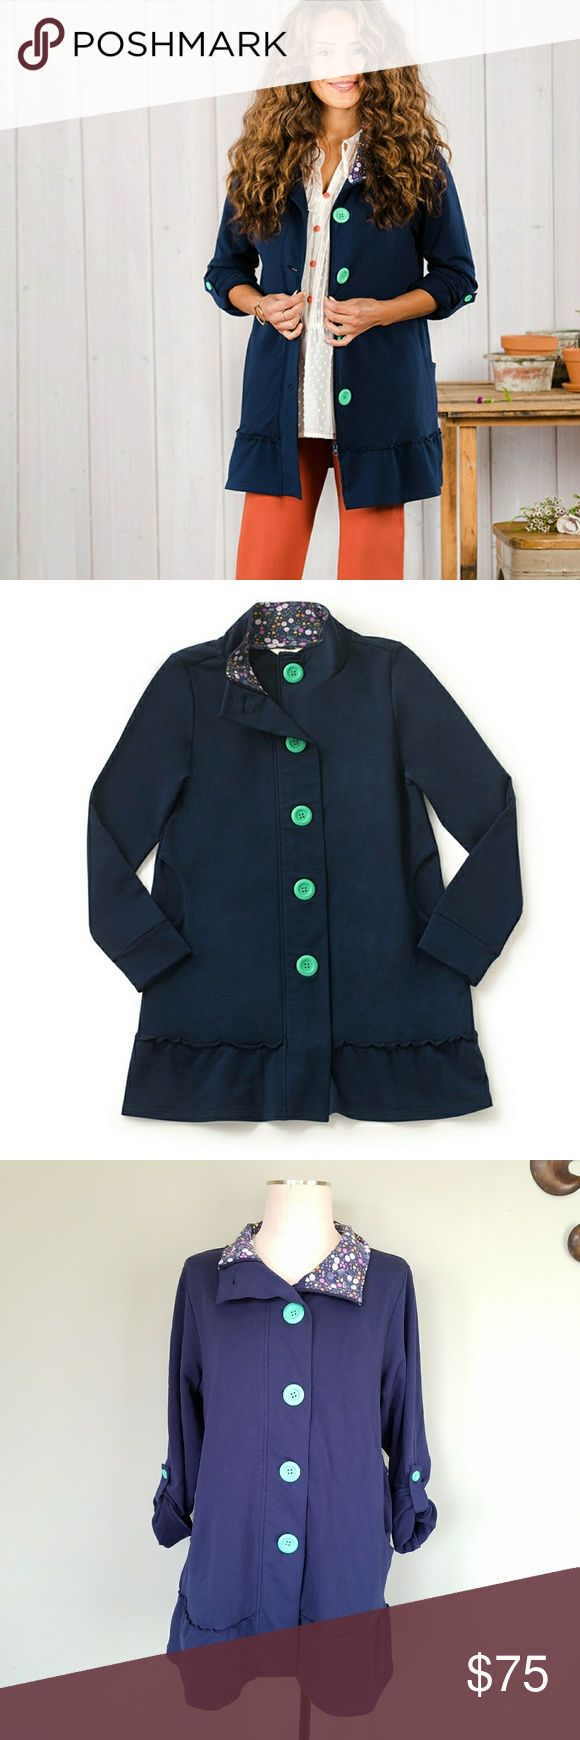 "Matilda Jane A Million Little Things Jacket Matilda Jane. Women's Large. Stretchy. A Million Little Things Jacket. Navy Blue - Large chunky teal buttons. Zip up and button up front.  Front pockets.  Ruffle bottom hem. Roll tab sleeves. Can be worn full length or buttoned up.  Floral pattern inside the collar. Medium weight. Perfect for spring! Bust- 21"" (Lying flat, from pit to pit.) Length- 31"" (from top of the shoulder to bottom hem). Excellent, like new, condition! Worn once. Matilda Jane…"